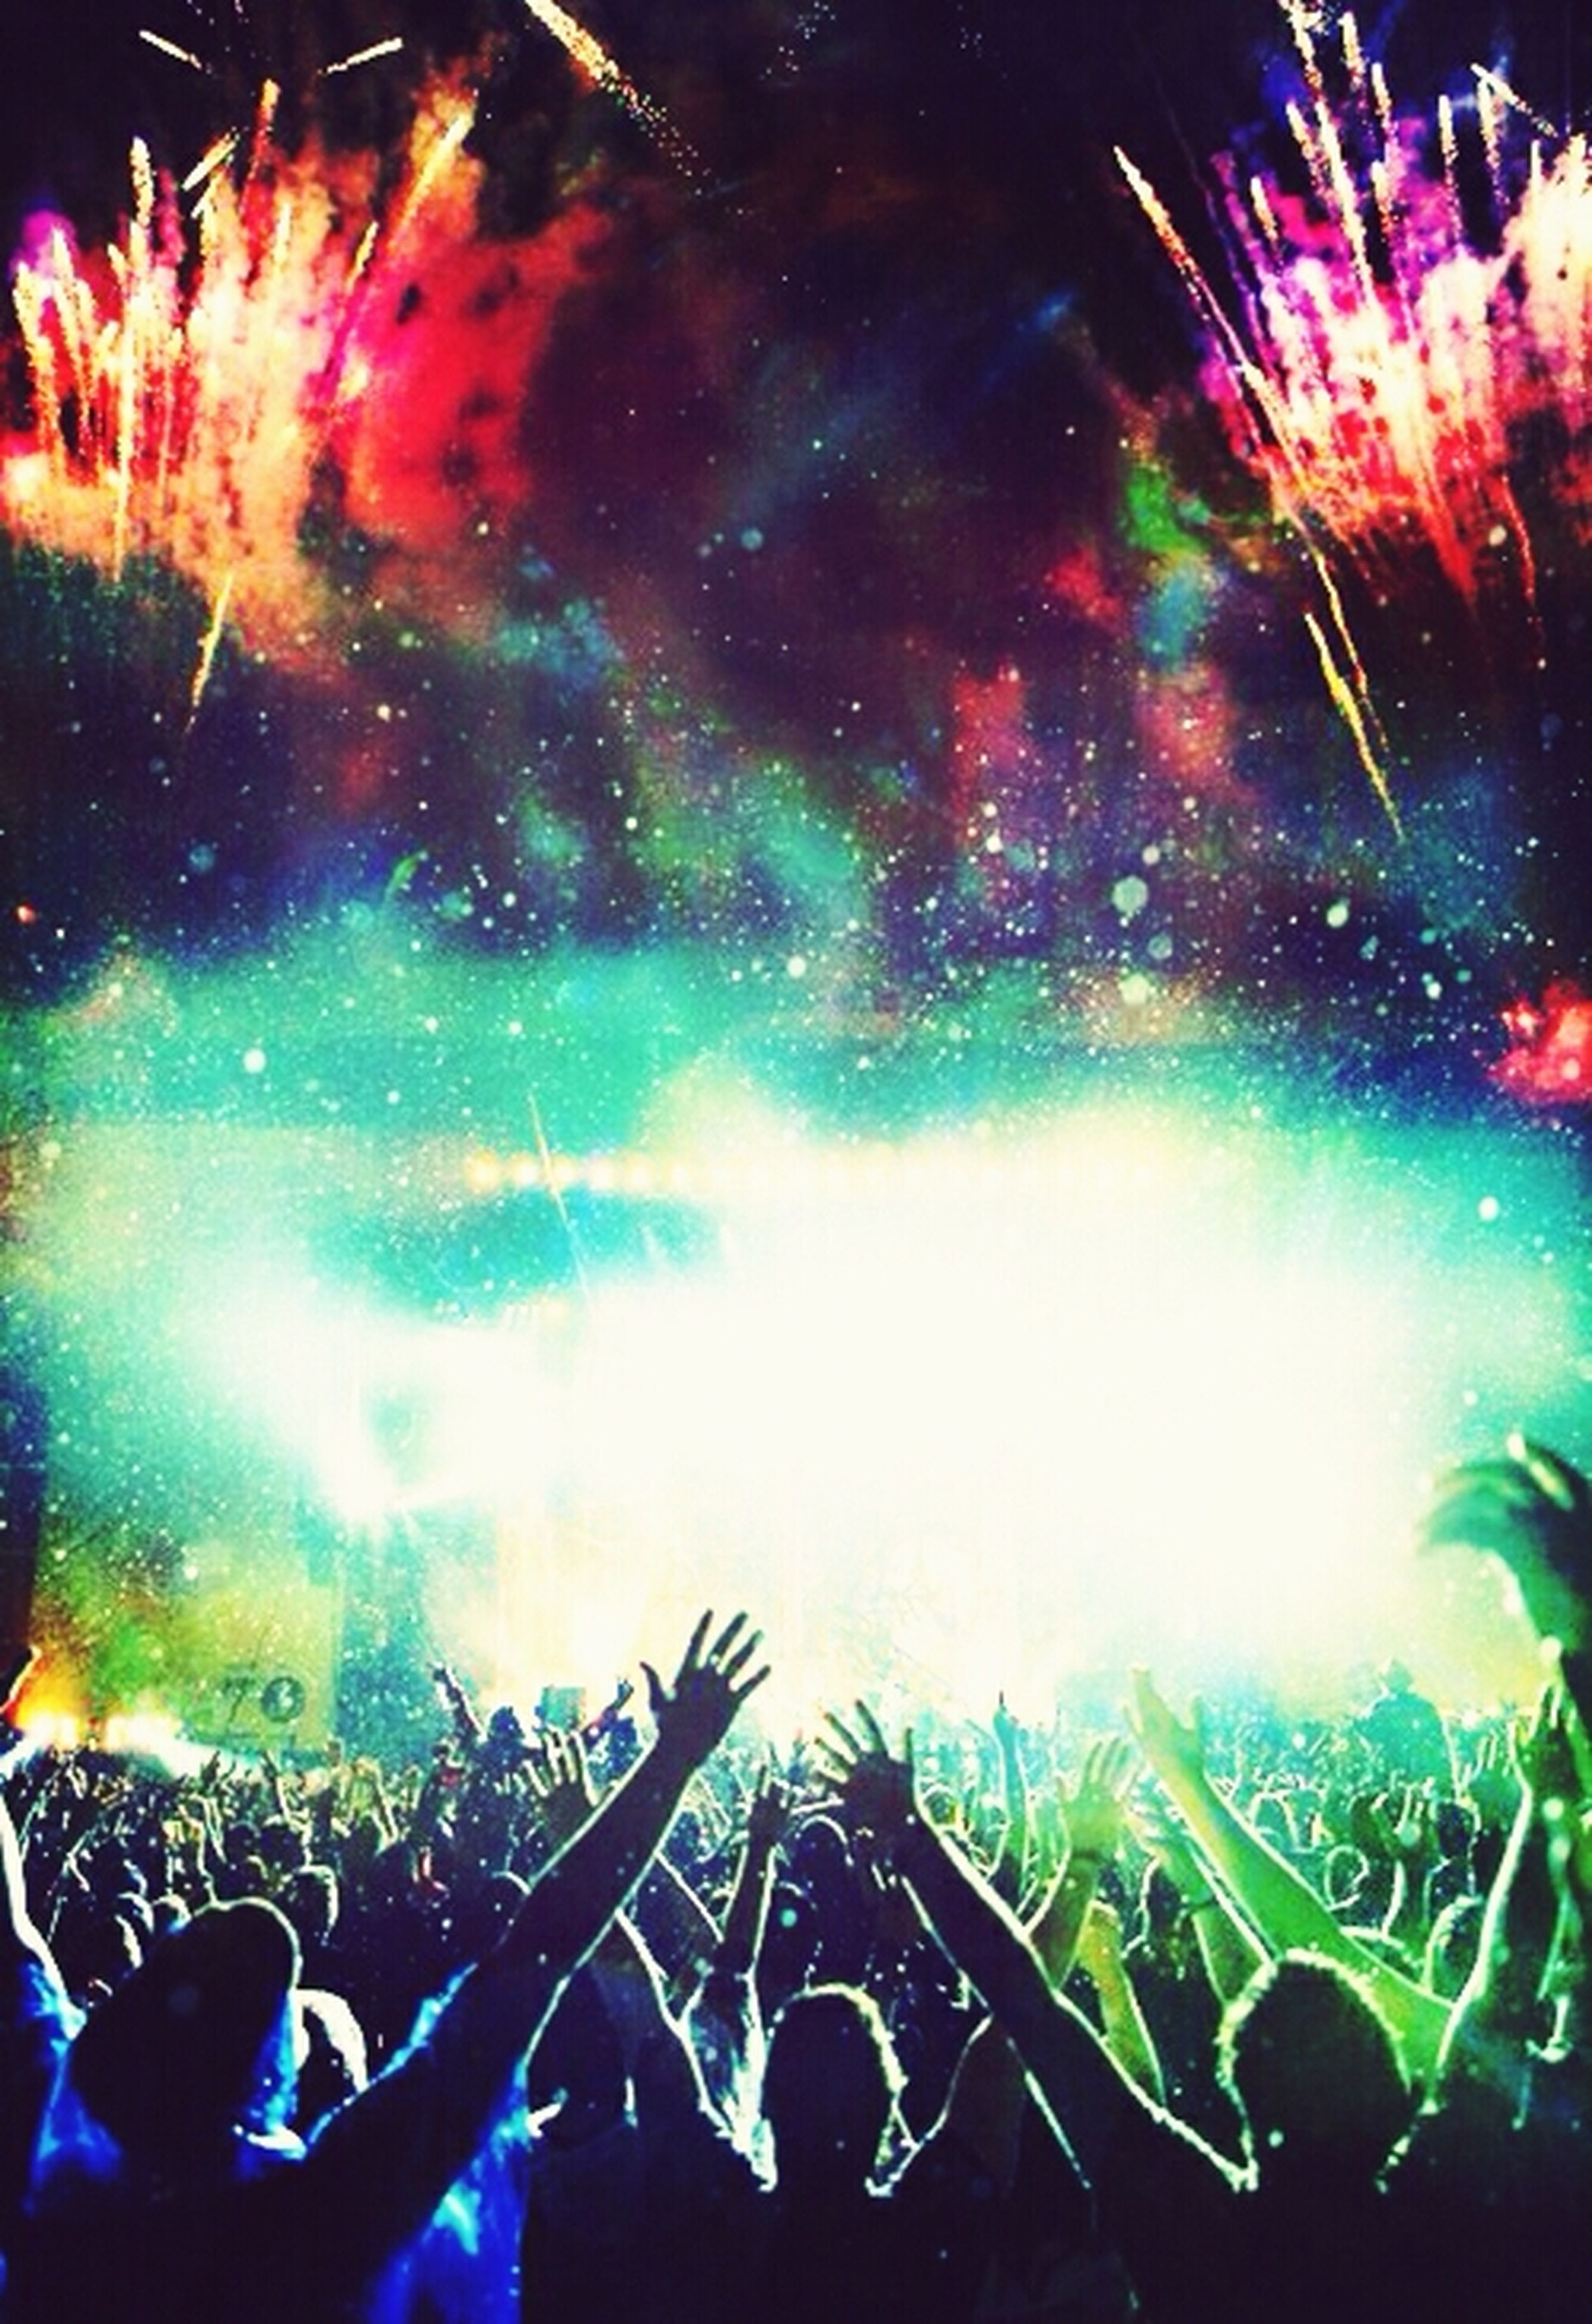 arts culture and entertainment, large group of people, event, lifestyles, leisure activity, crowd, illuminated, night, men, celebration, enjoyment, fun, togetherness, nightlife, person, music festival, popular music concert, music